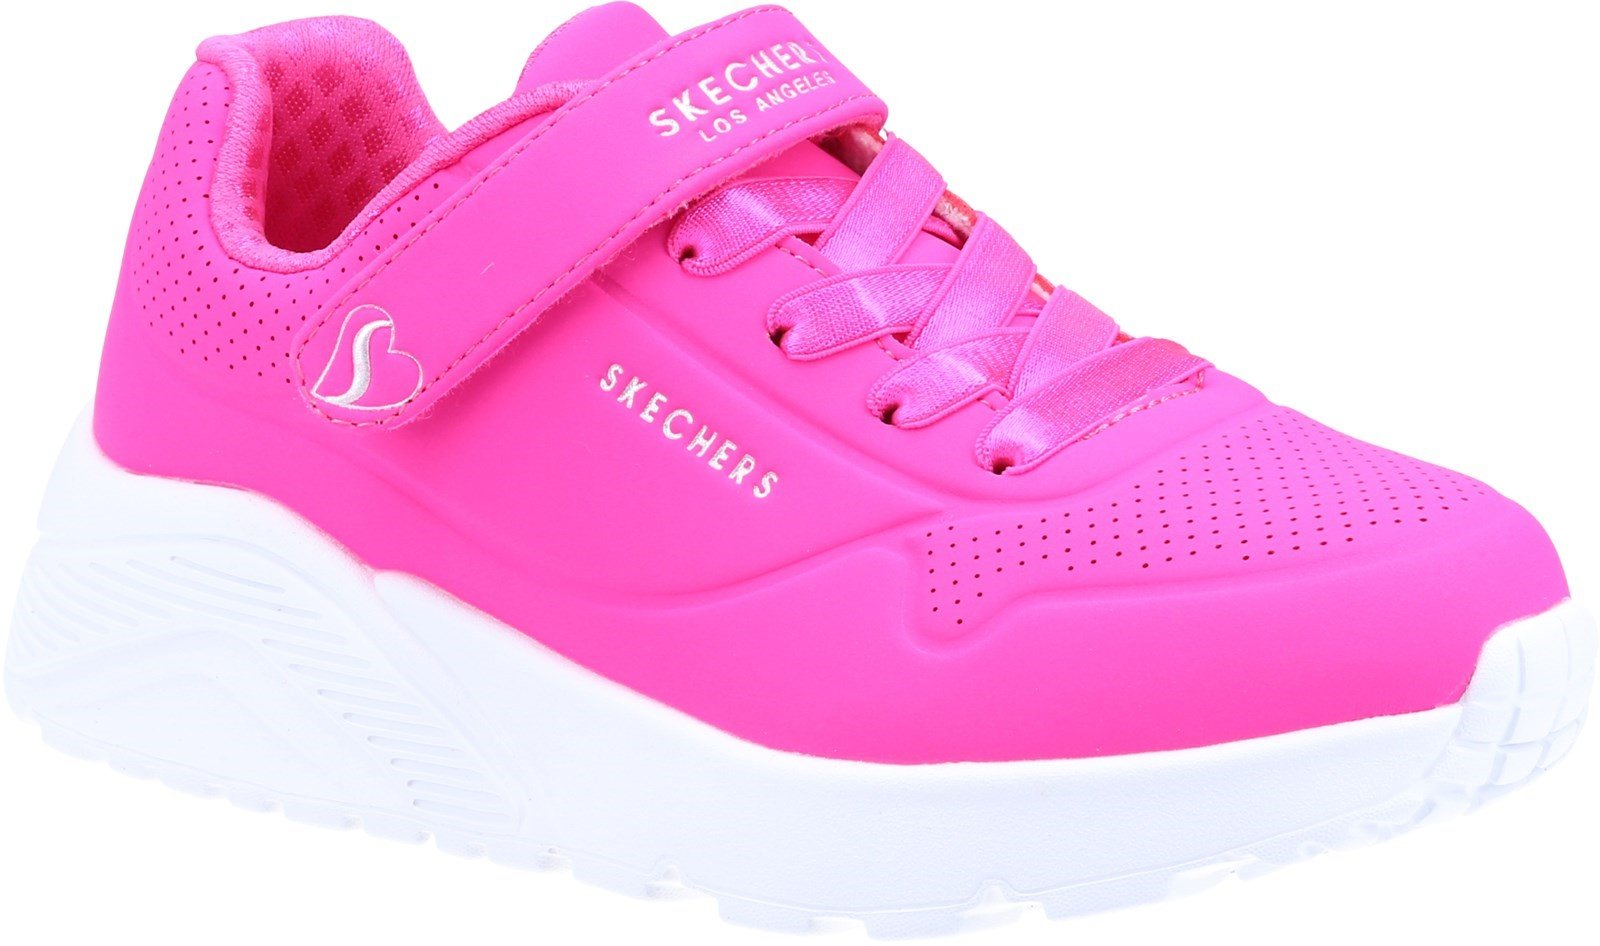 Skechers Kid's Uno Lite Sports Trainer Various Colours 32097 - H.pink Synthetic/Trim 10.5